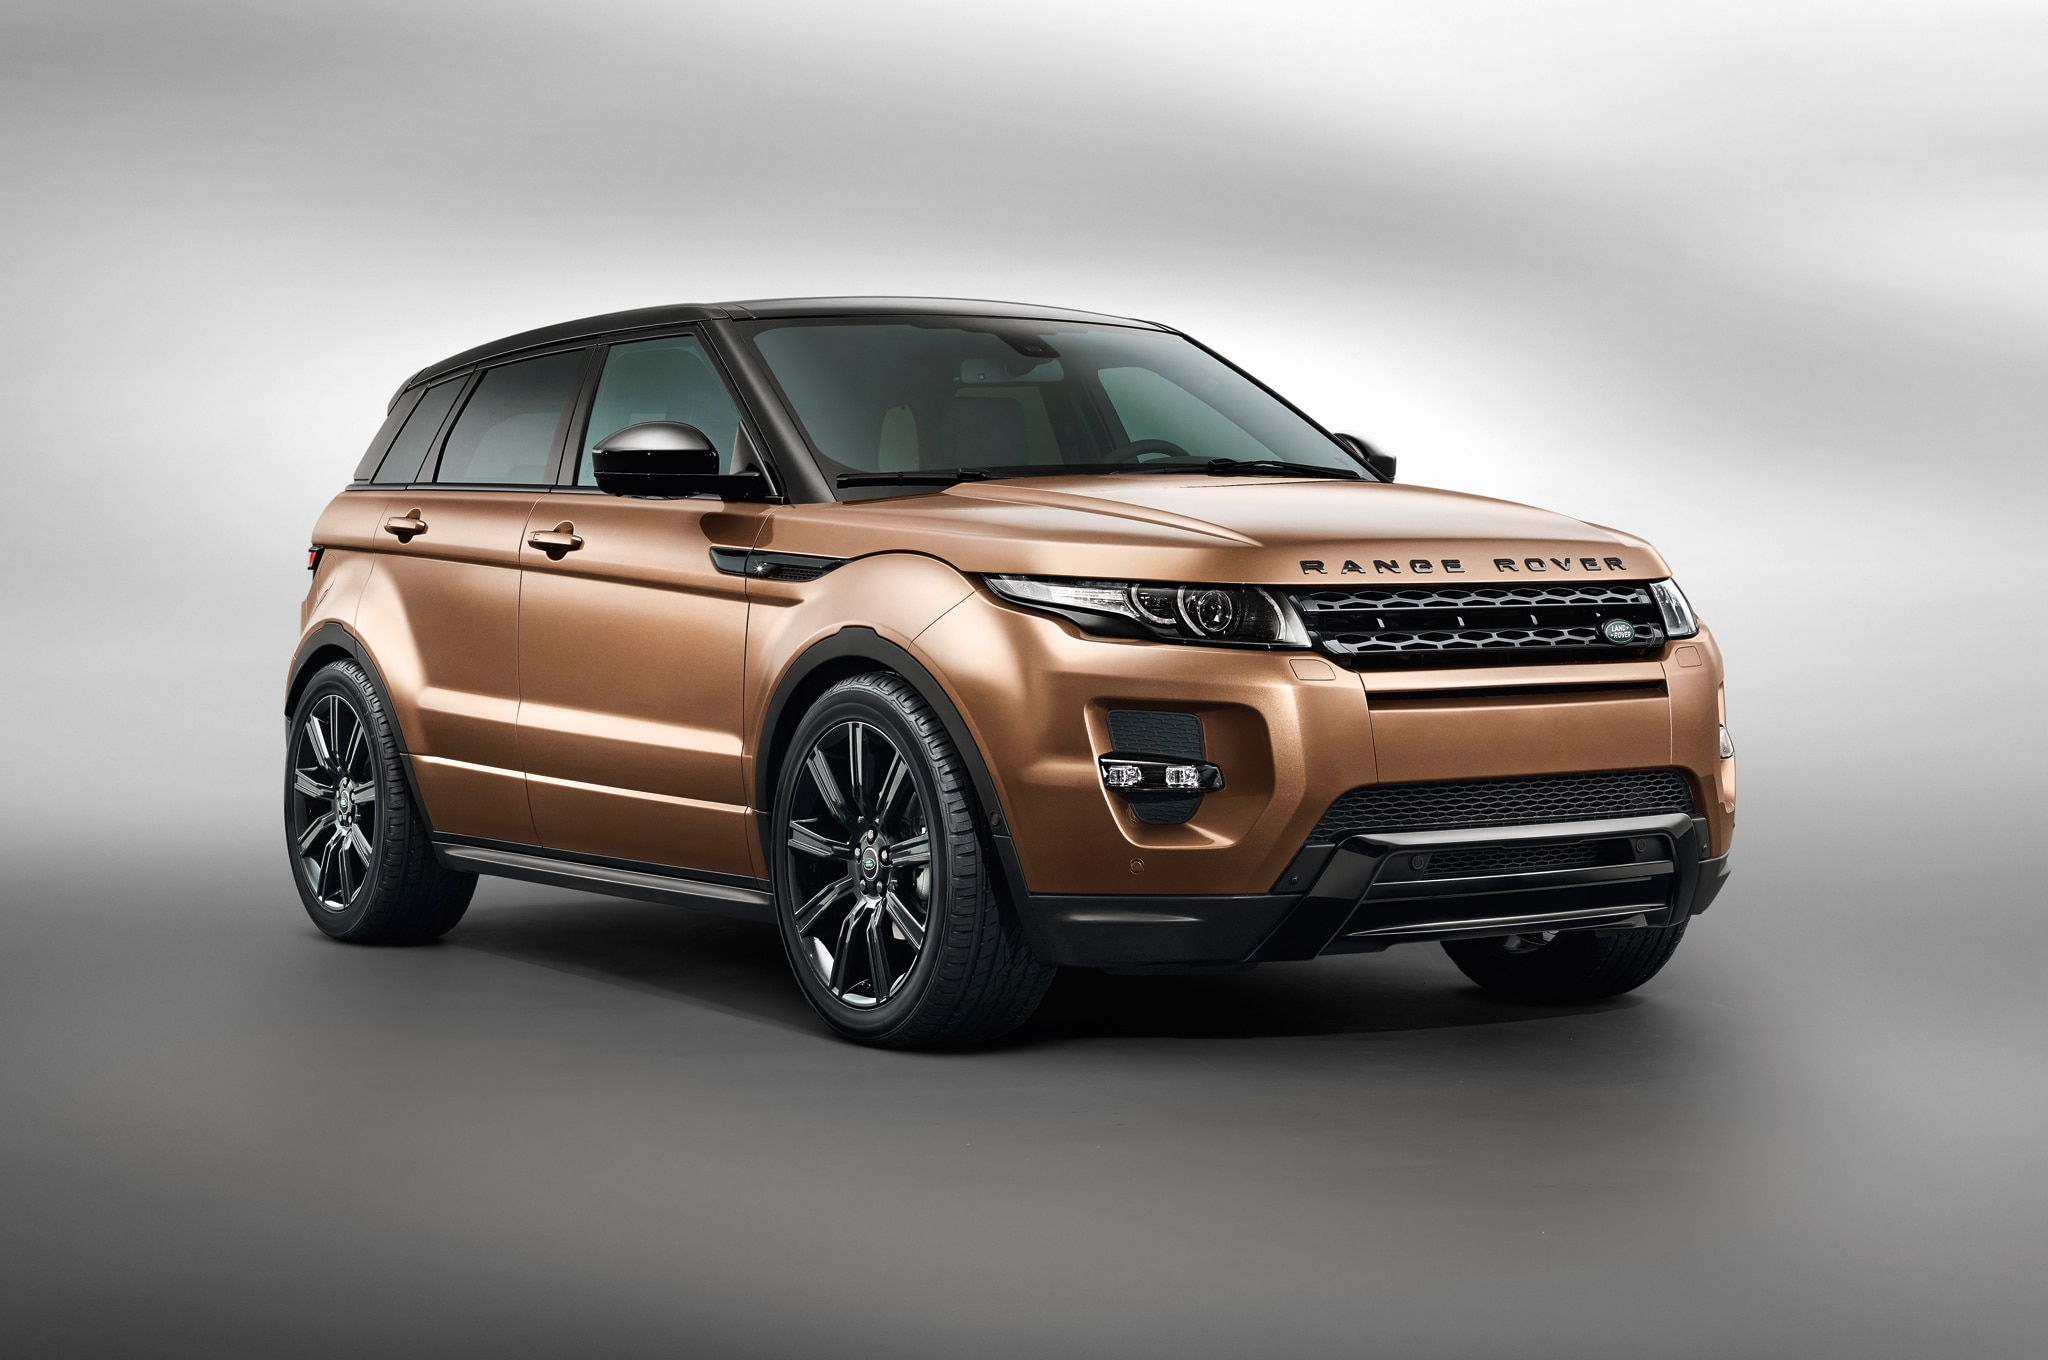 2014 Land Rover Range Rover Evoque Front Three Quarter1